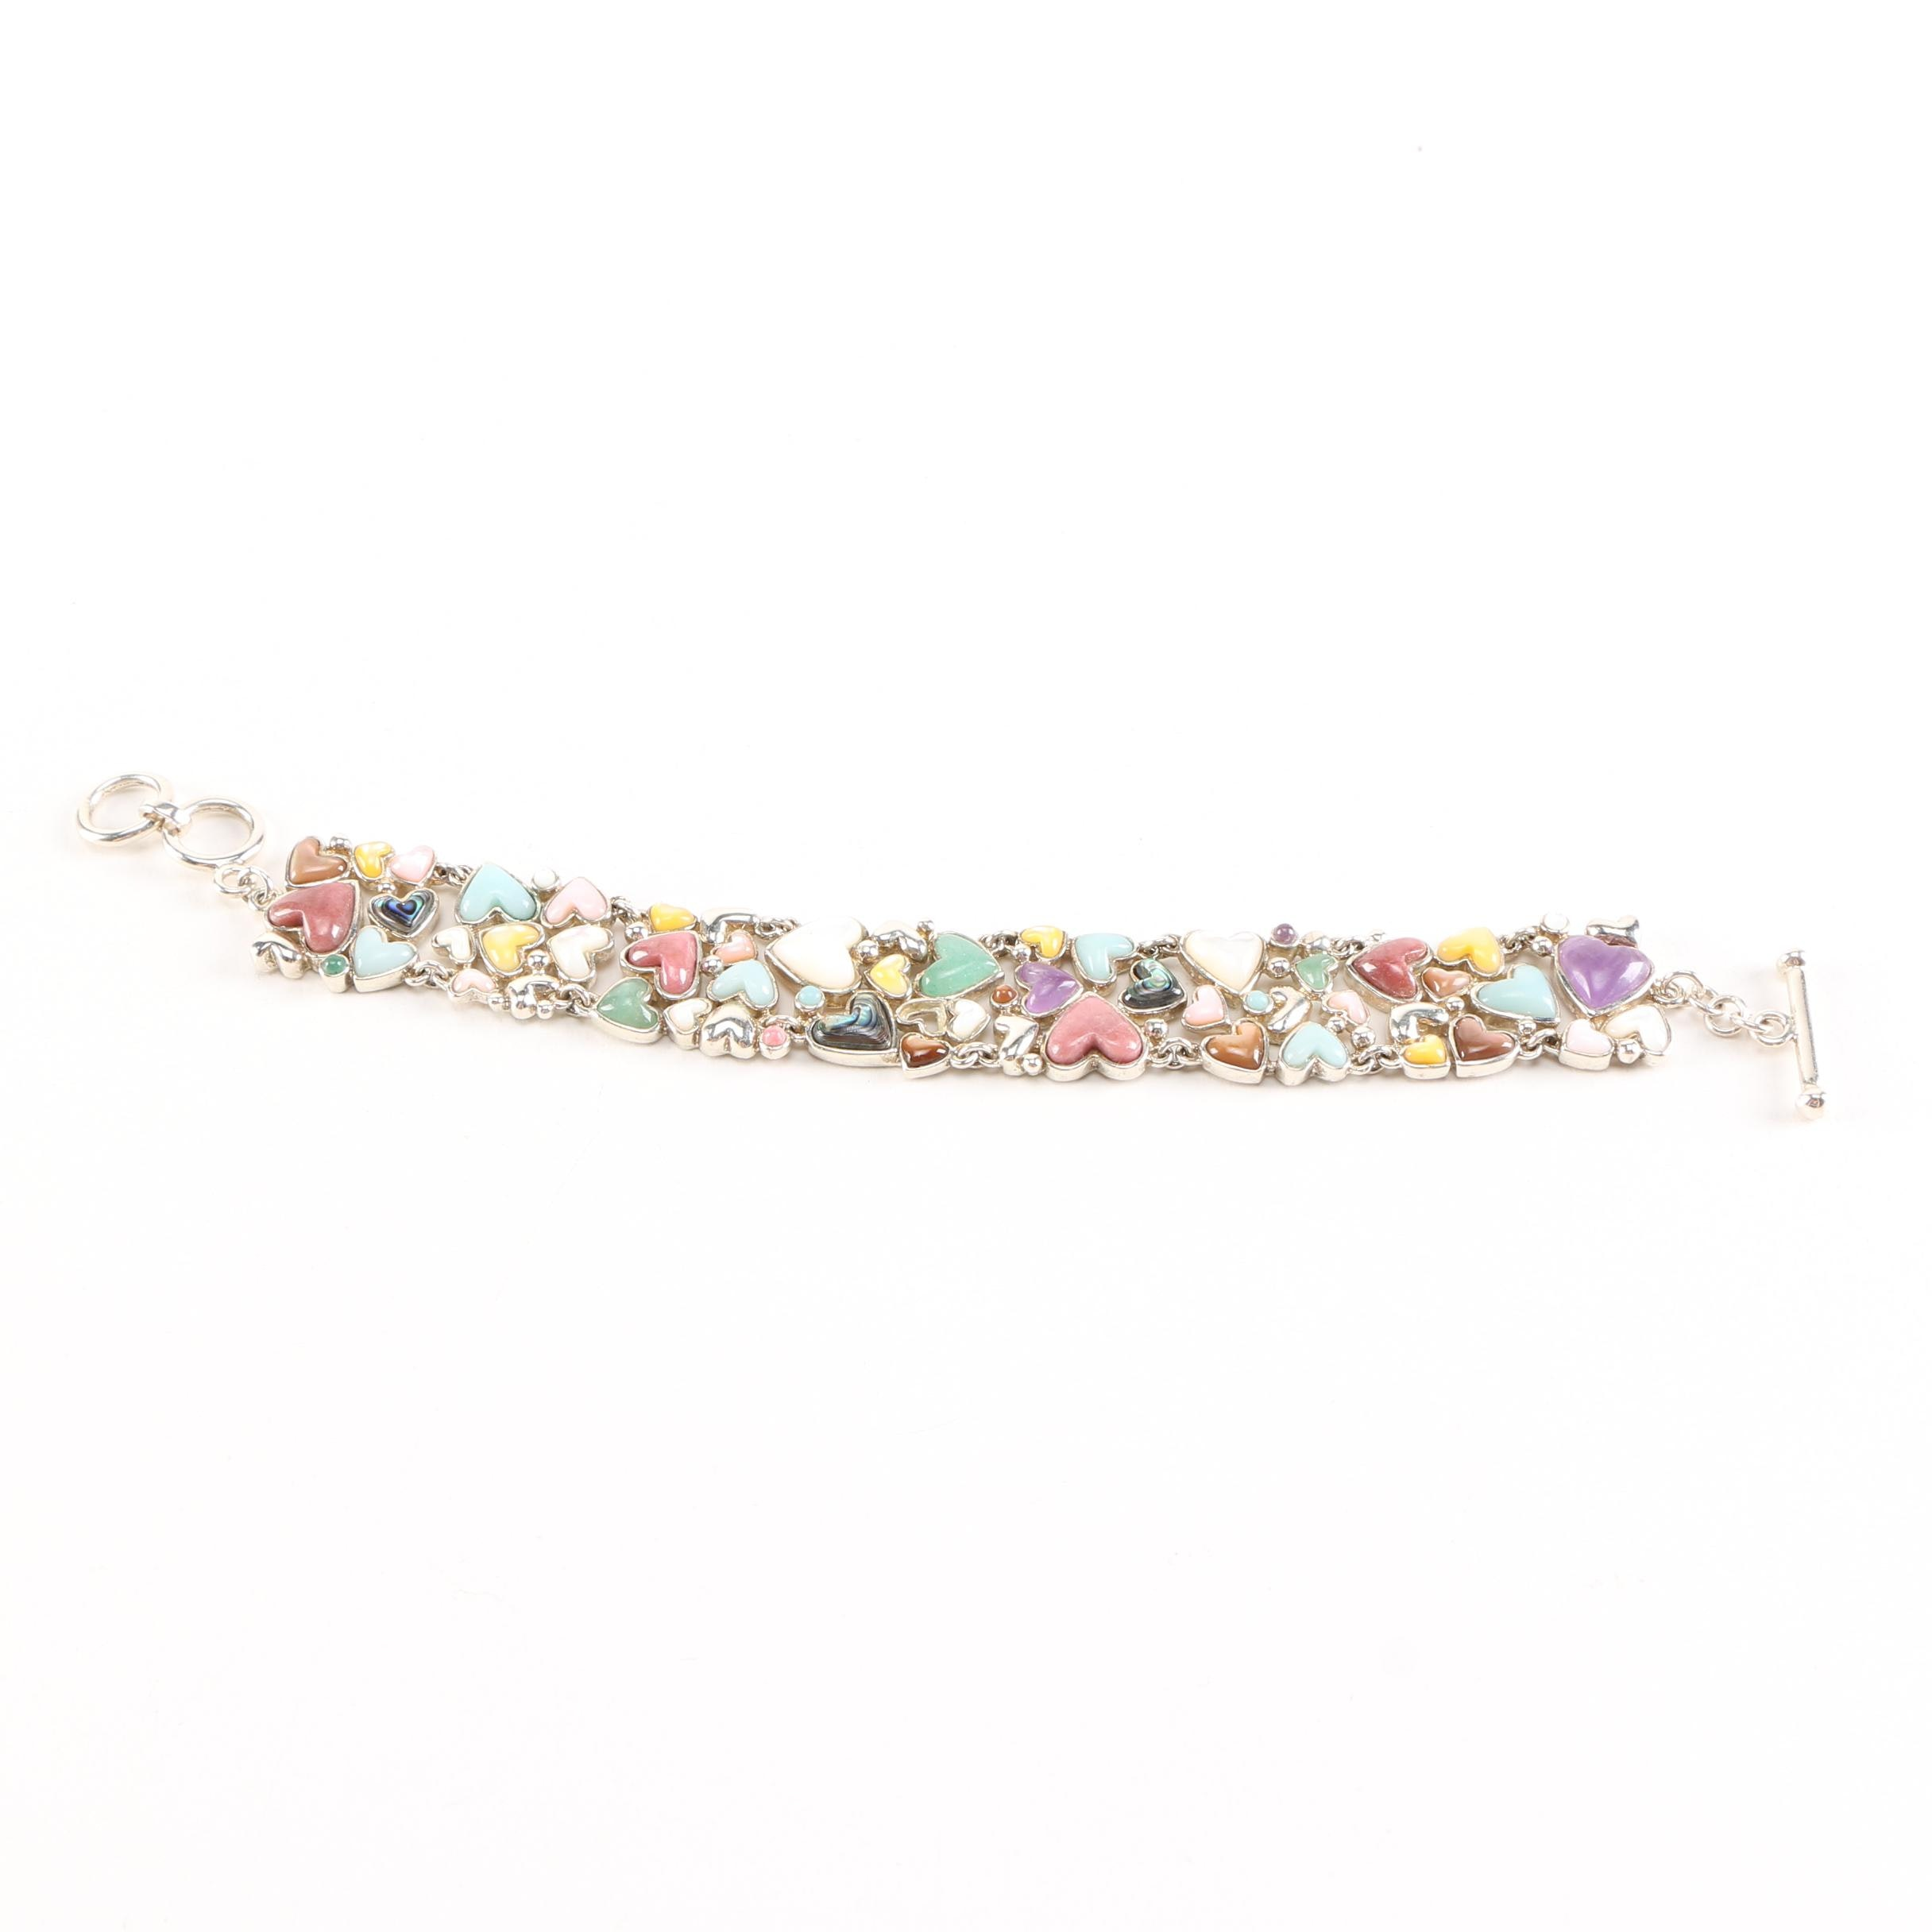 Whitney King Sterling Silver Bracelet with Gemstone Accents